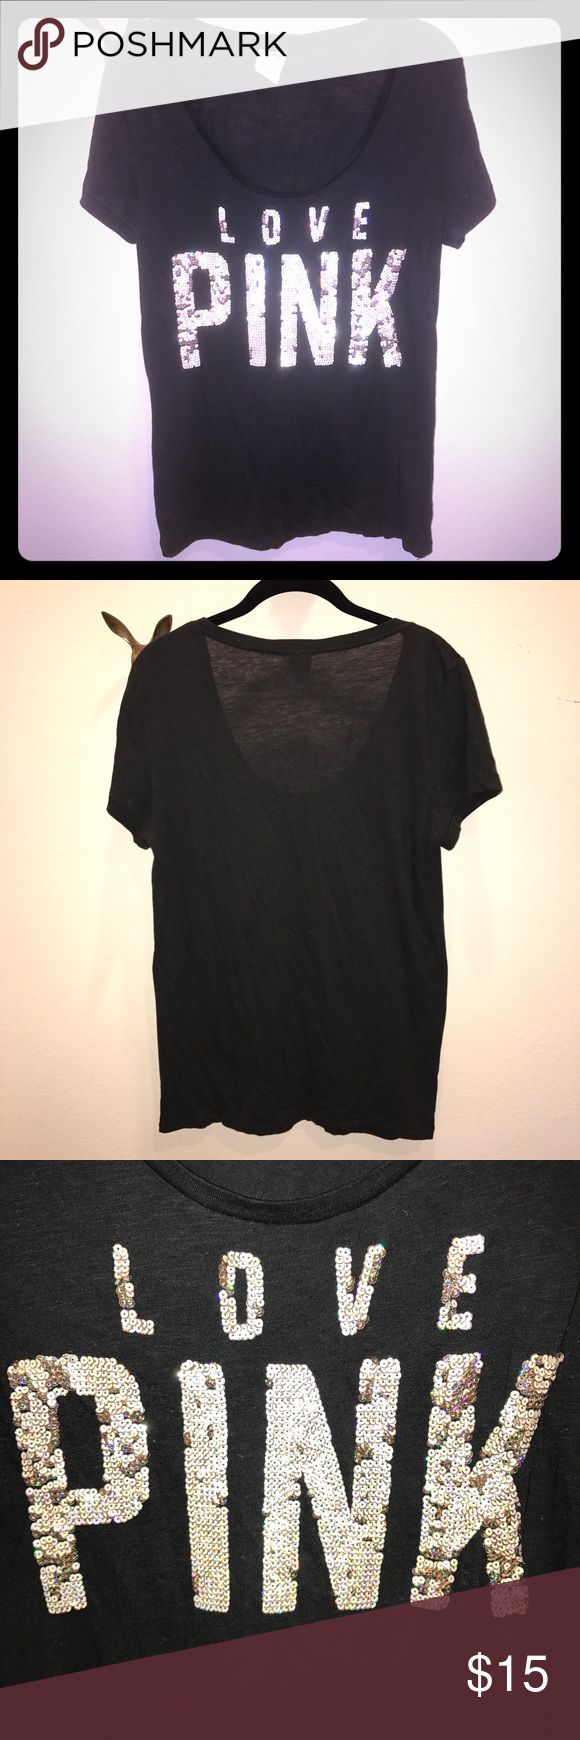 Victoria's Secret PINK sequin tee shirt size L Victoria's Secret PINK black short sleeve tee shirt. Size L. Super soft. Sequins are reversible from white to silver. Excellent used condition. No missing sequins. PINK Victoria's Secret Tops Tees - Short Sleeve